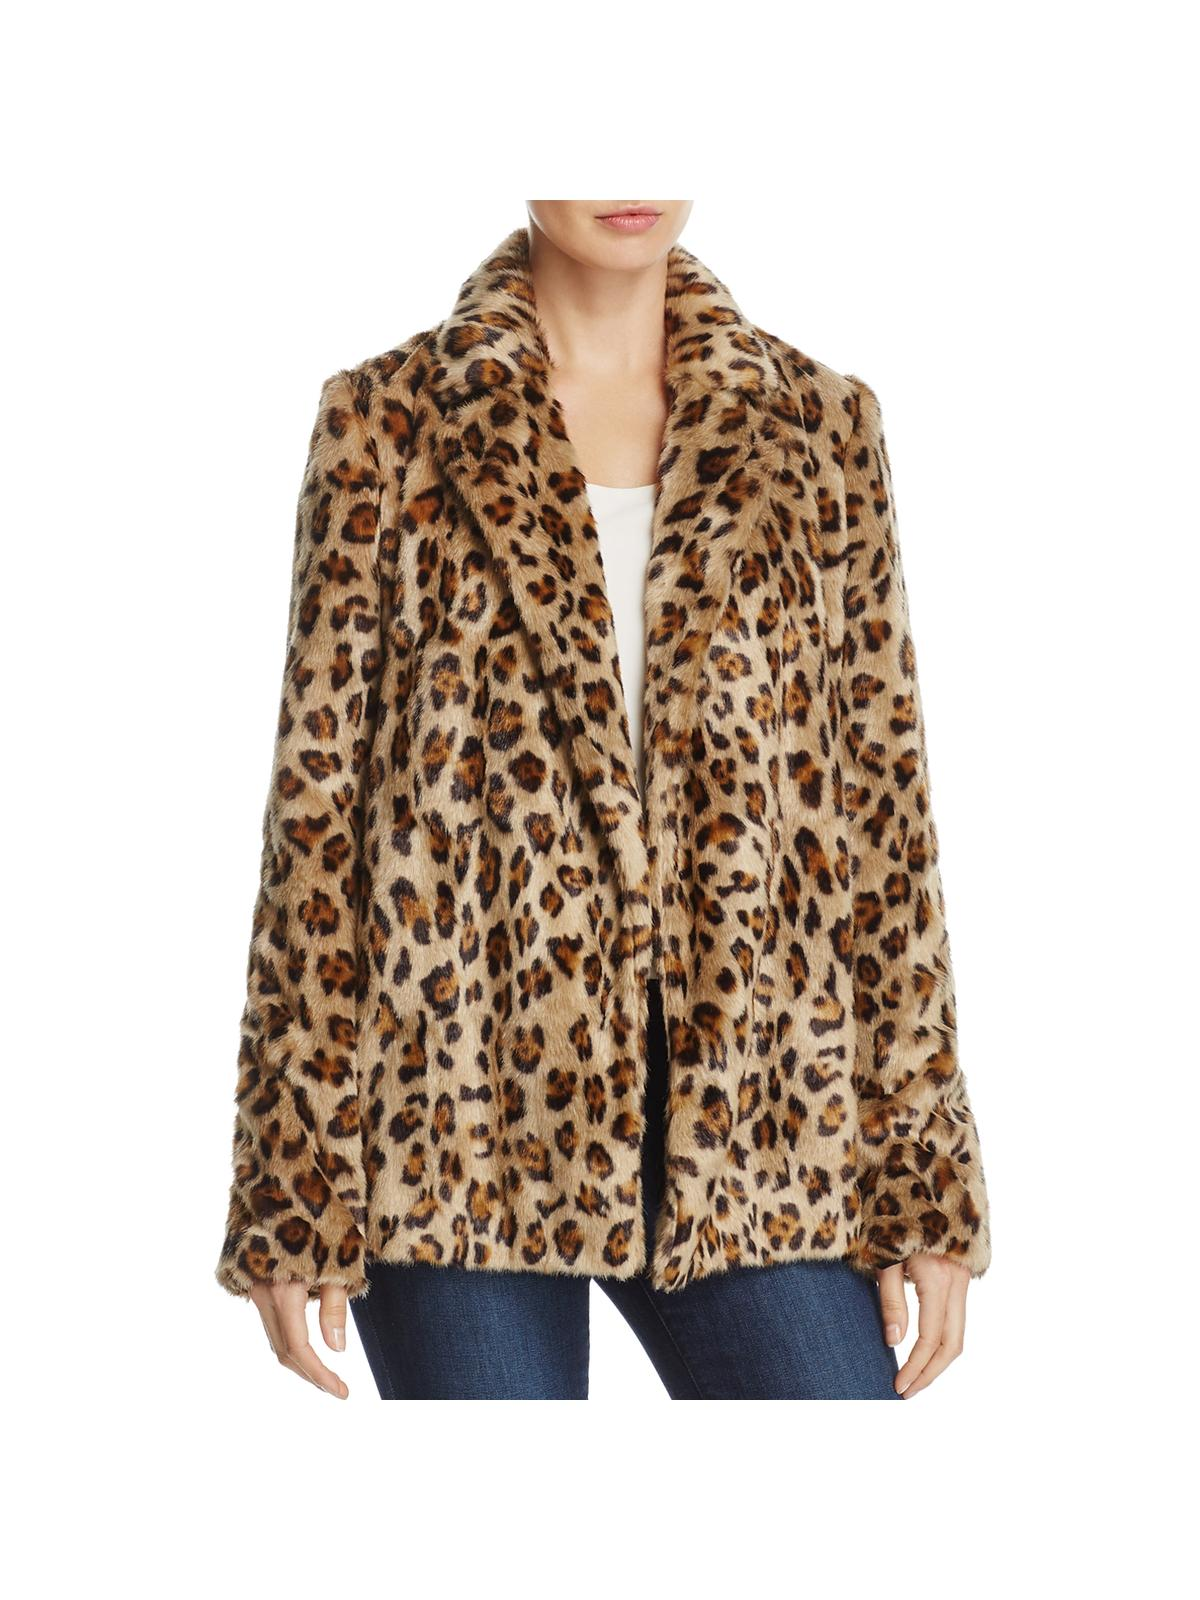 Theory Womens Clairene Winter Leopard Print Faux Fur Coat